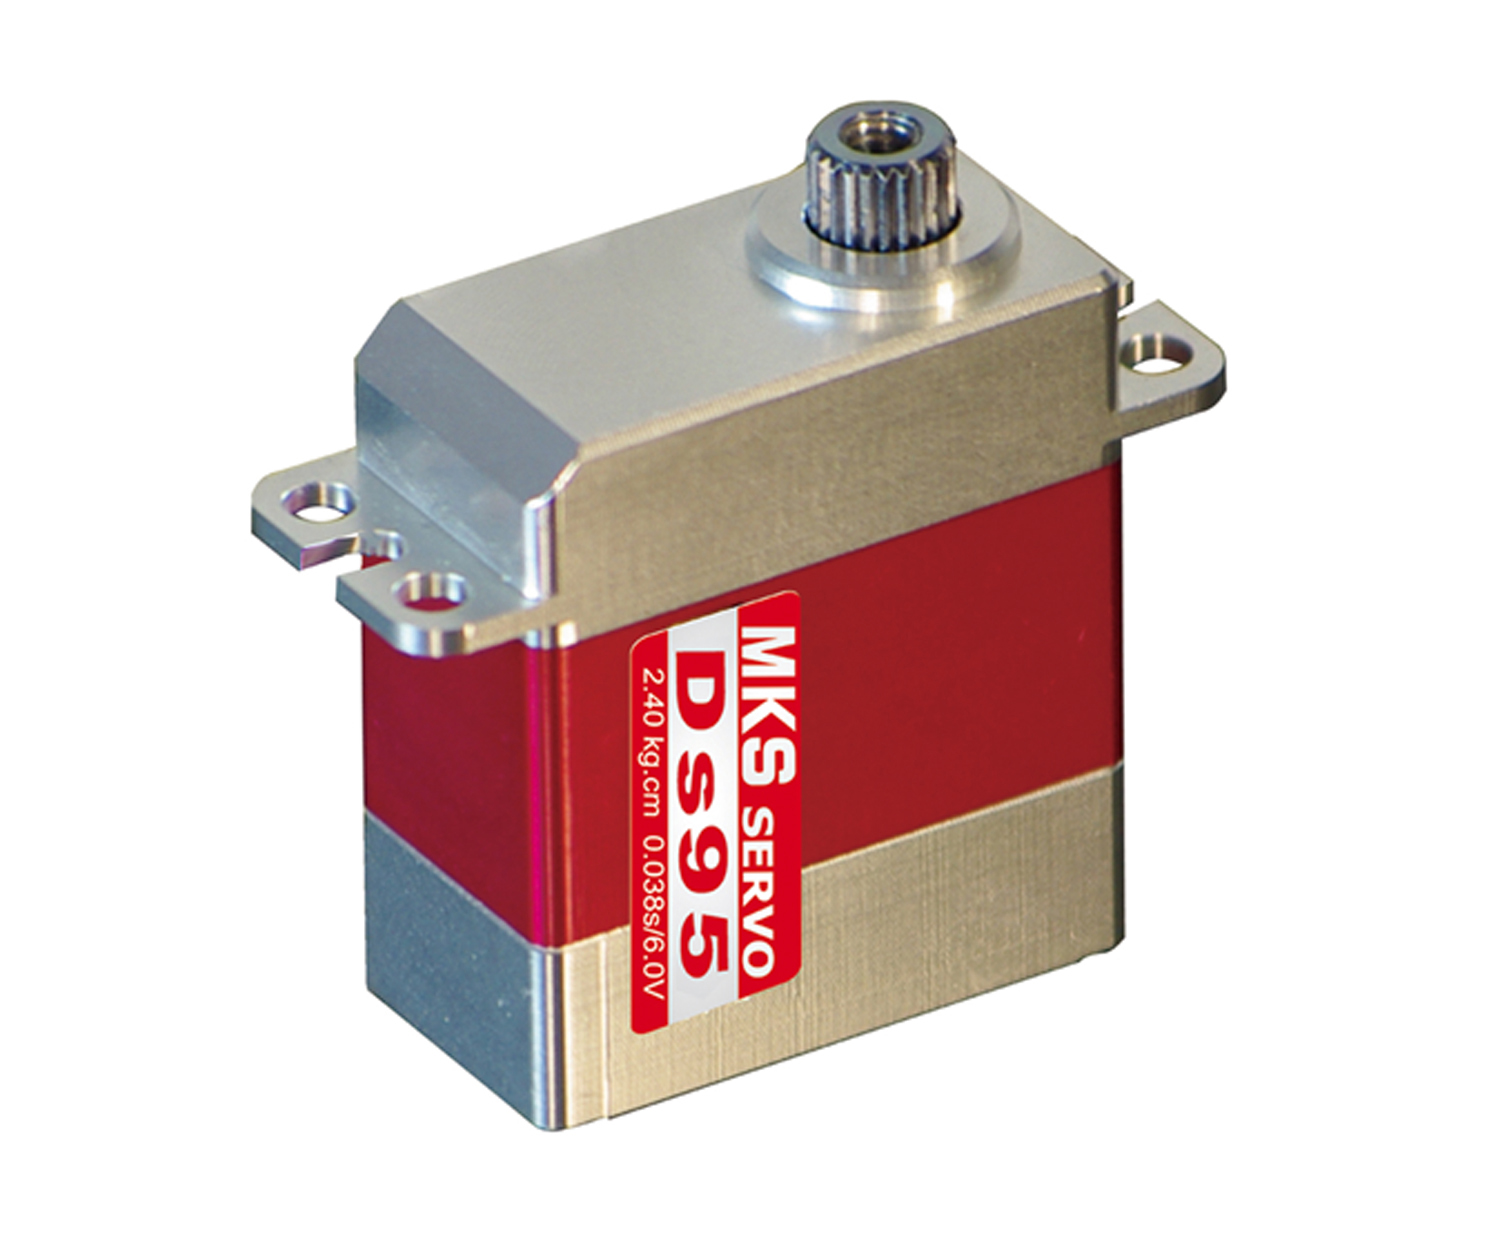 MKS DS95 -MG Digital Servo